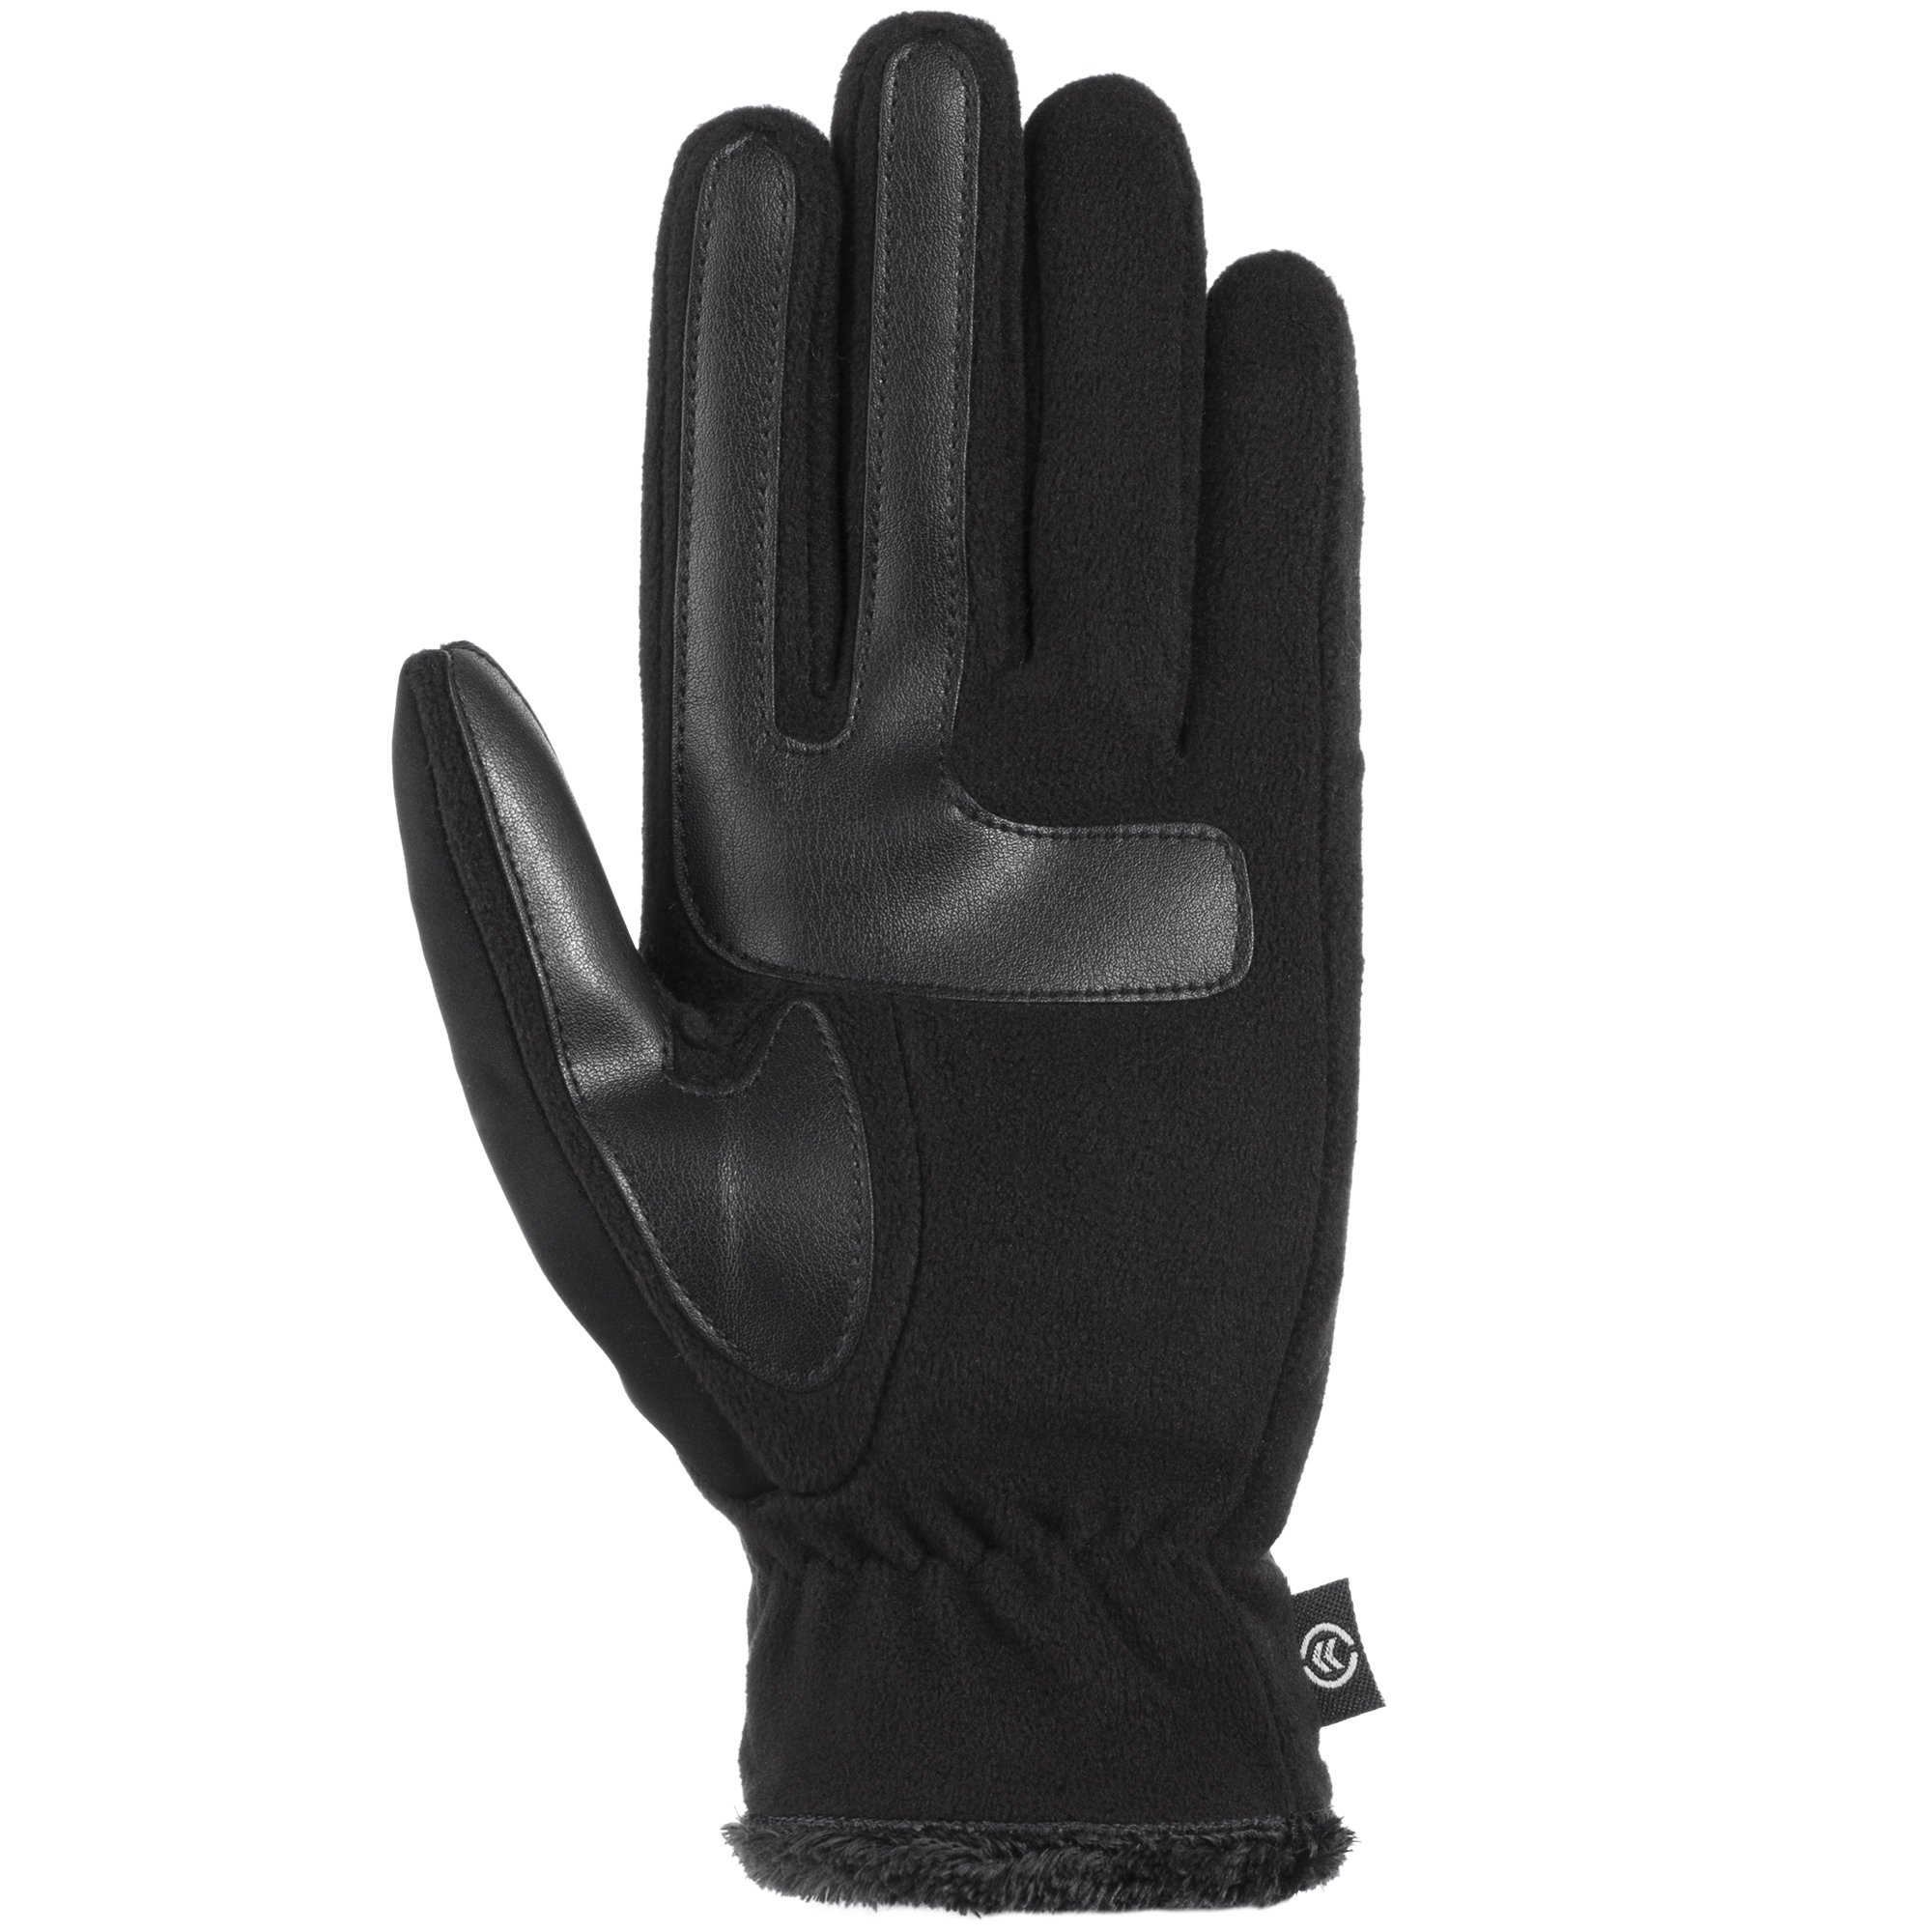 Isotoner Women's Softshell Gloves with Thermaflex Core and Smartouch Technology by ISOTONER